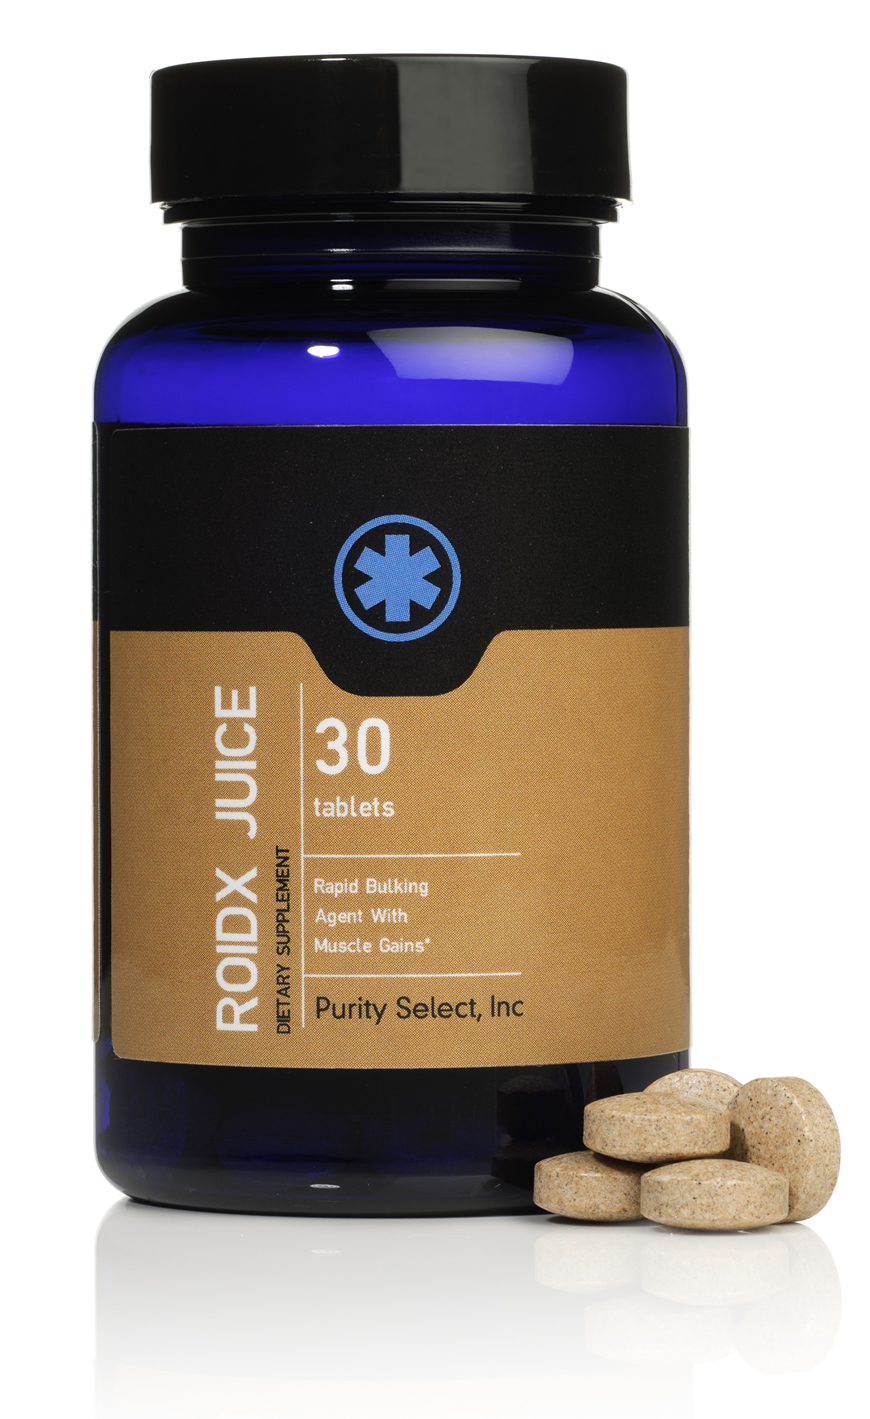 Roid x Juice Review – pure muscle mass for men